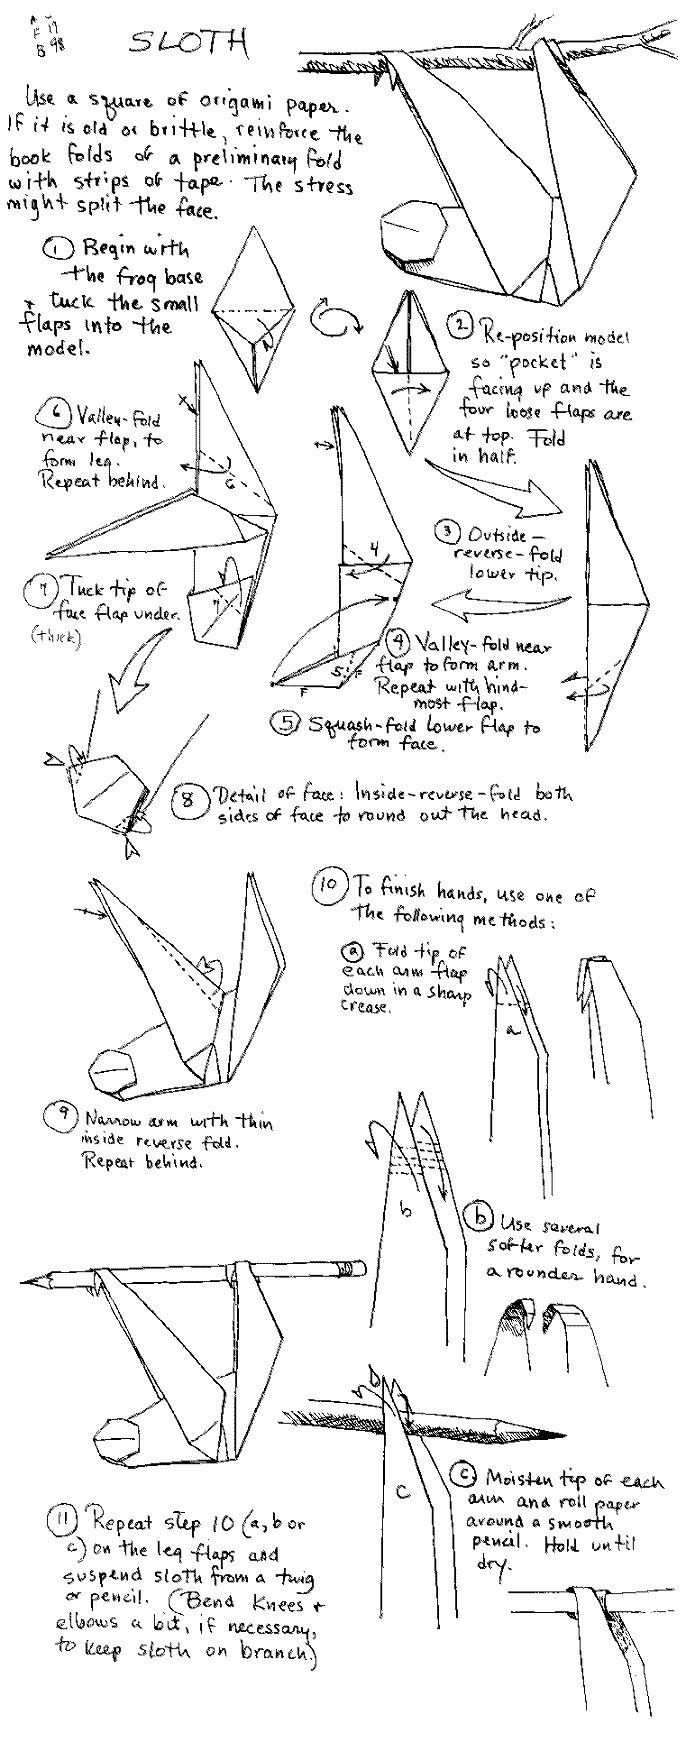 Pin By Smashley Lopez On The Craft Pinterest Origami Sloth And Swan Diagram Http Picsblameitonthevoicescom 032012 Instructions